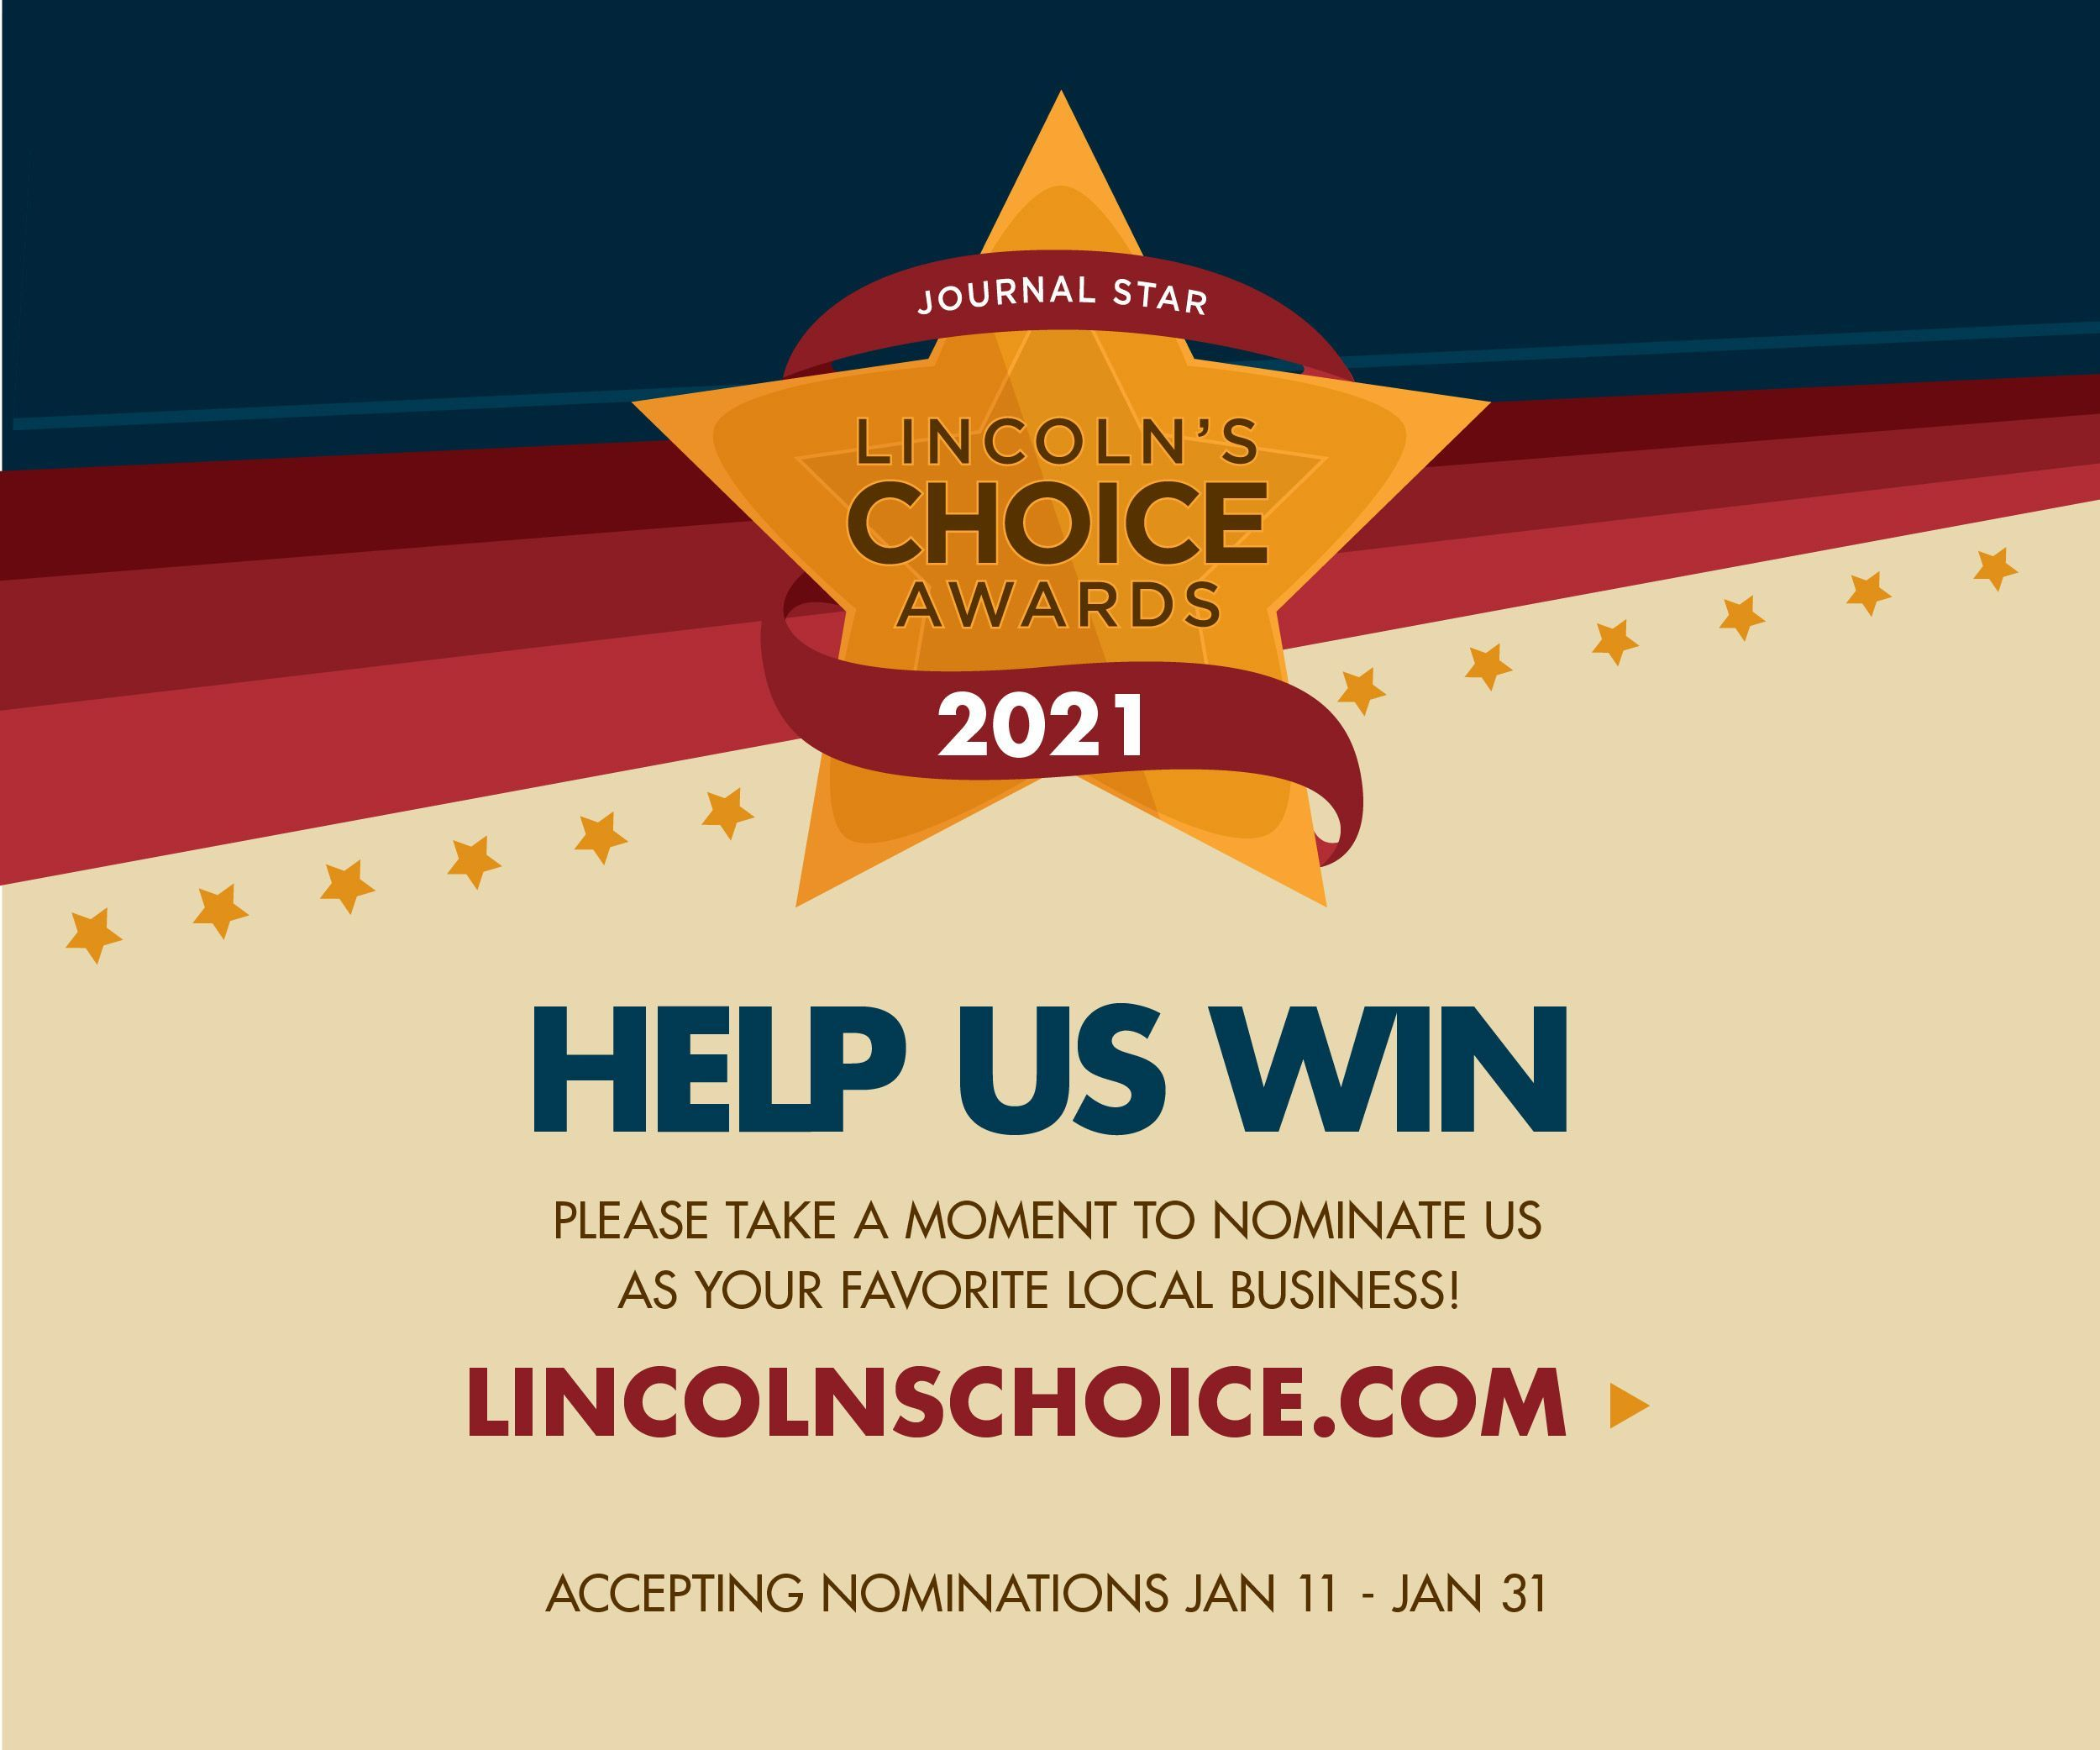 Nominate Tabitha Daily for Lincoln's Choice Awards